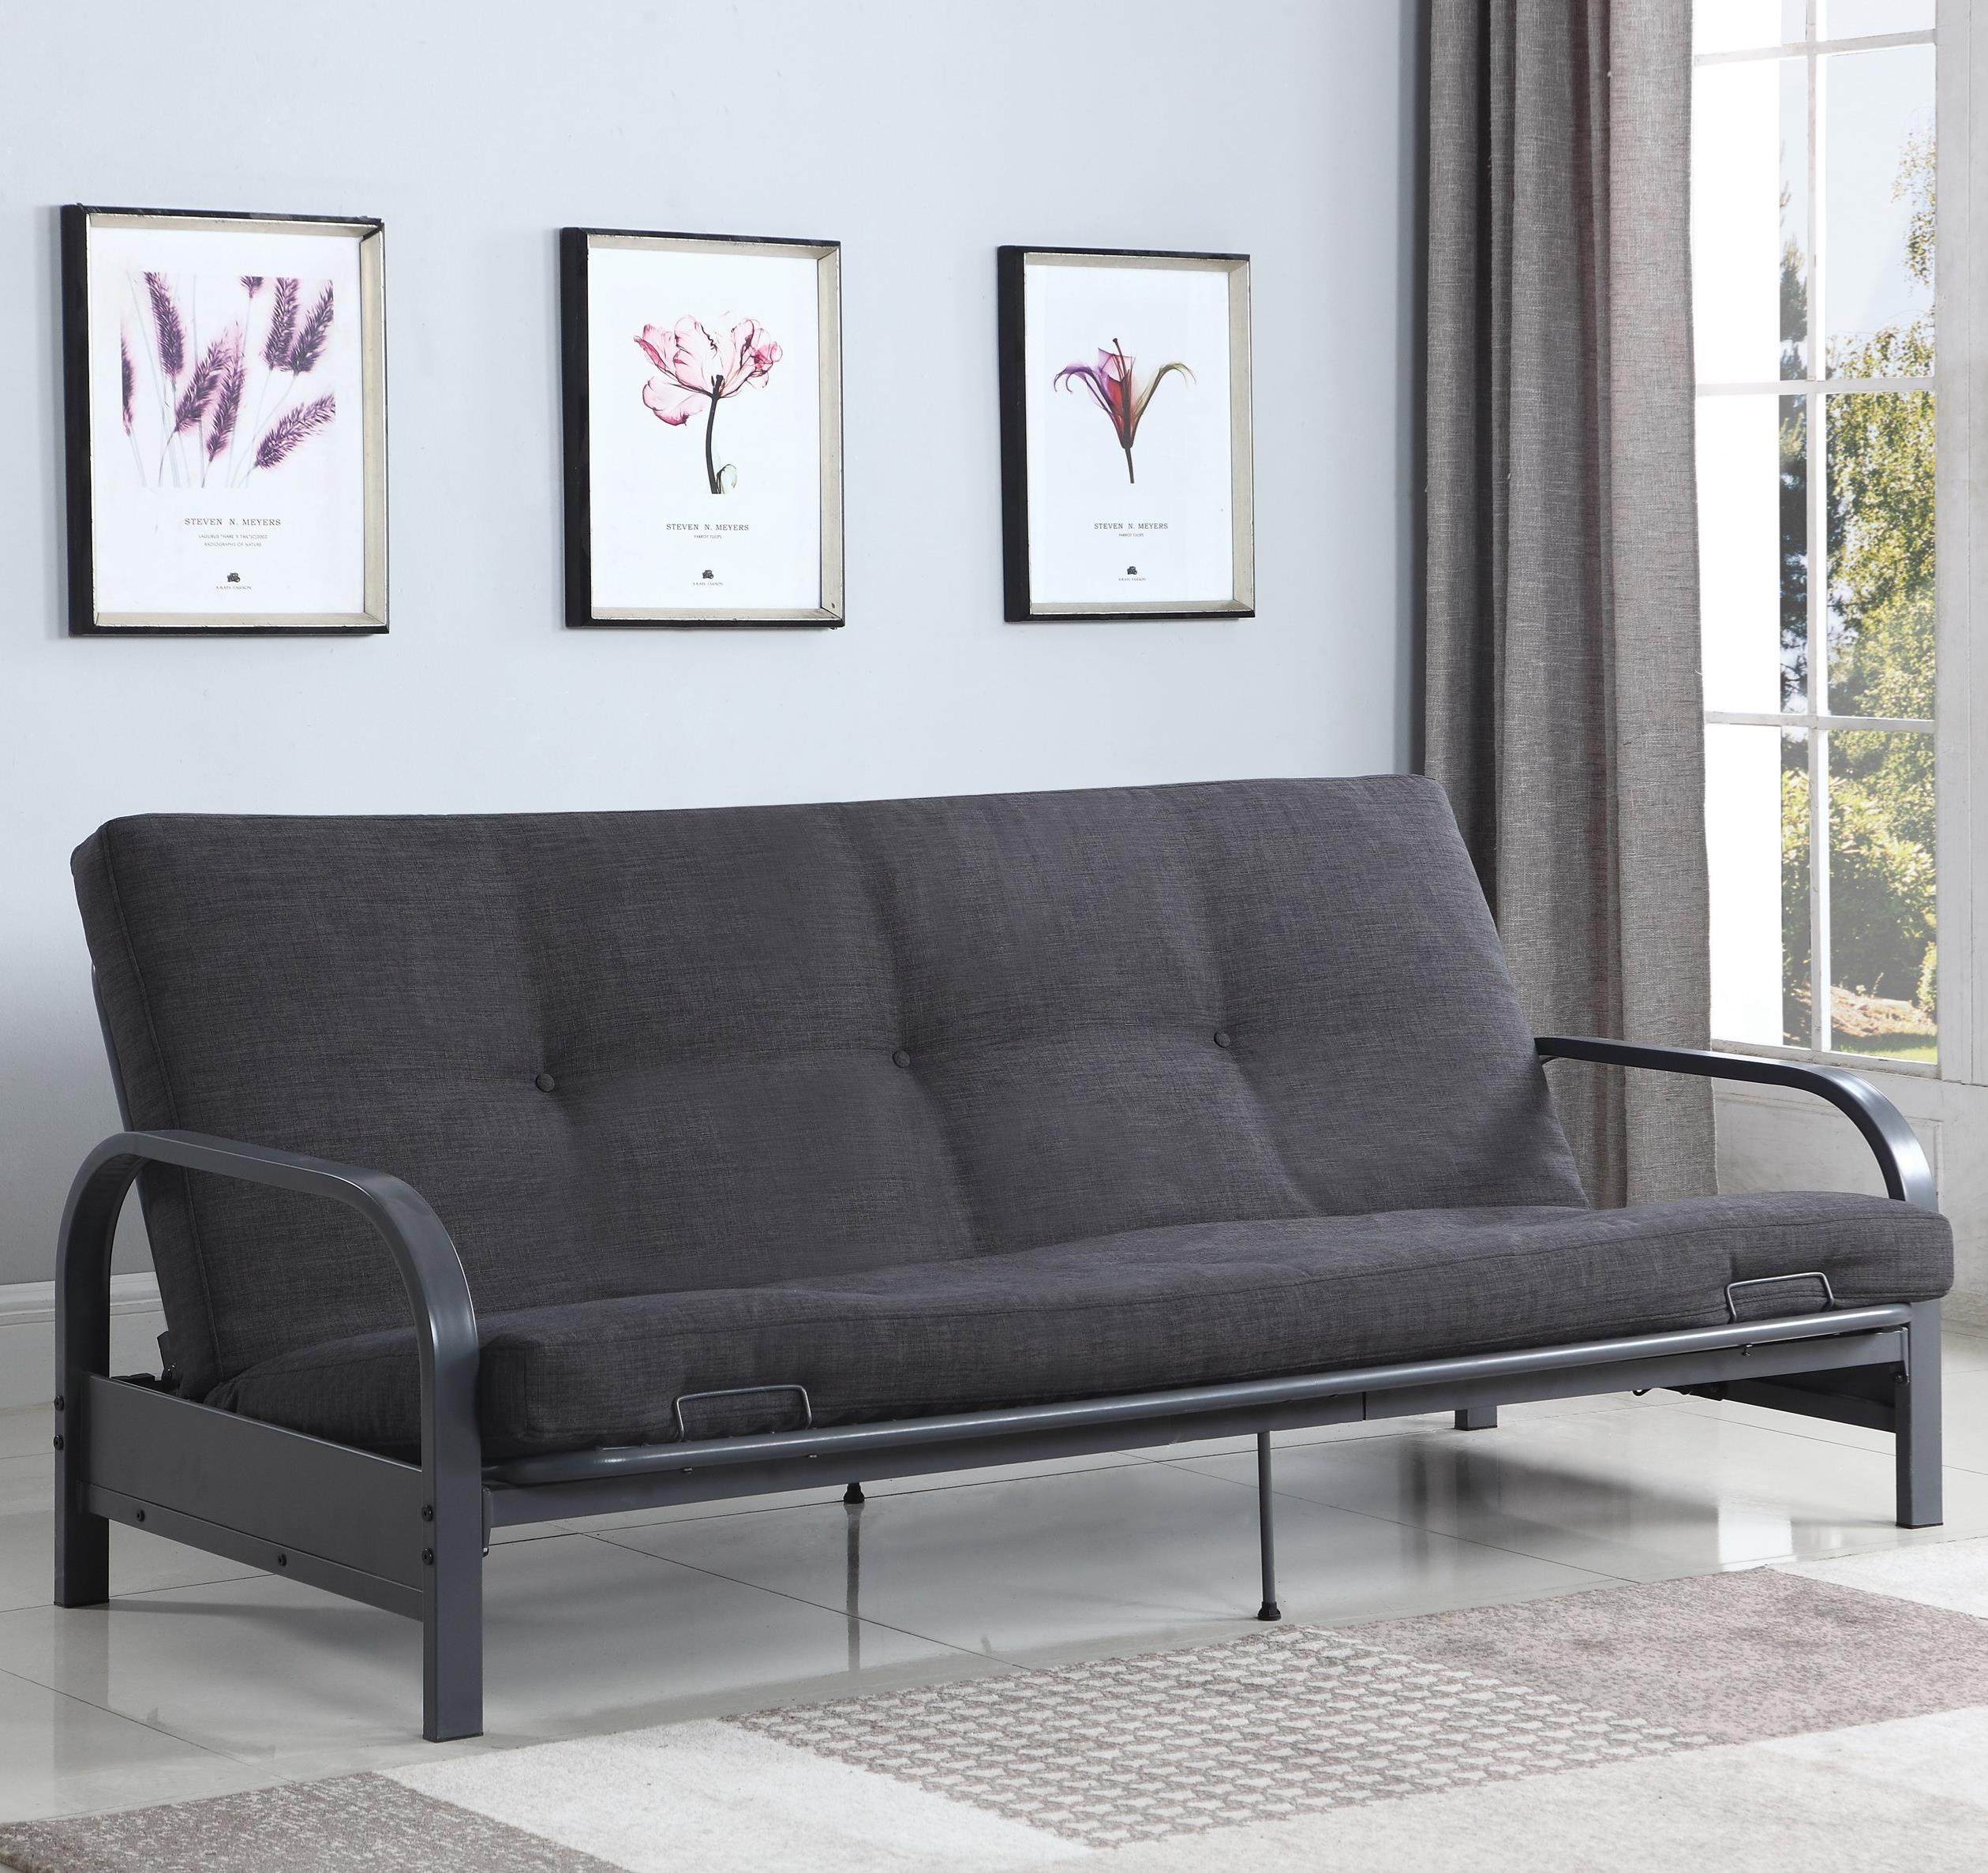 Sofa Beds And Futons Contemporary Futon